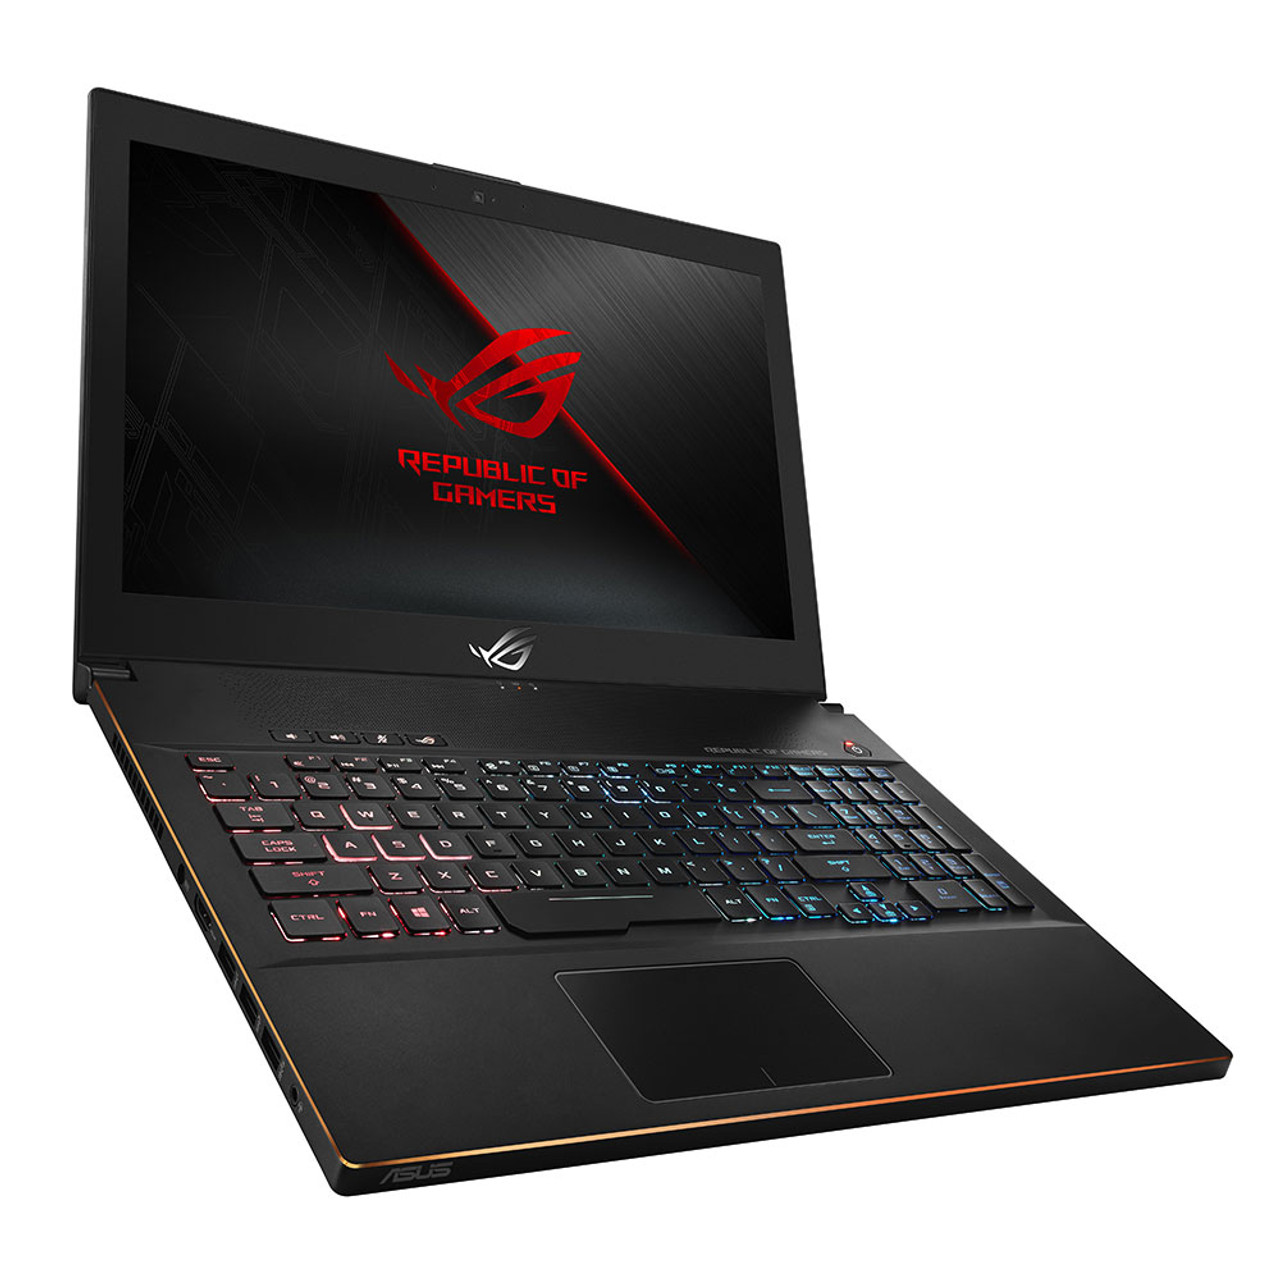 """ROG Zephyrus M represents the modernization of the gaming laptop. It's ultraportable at only 0.79"""" thin and 5.5 lbs. Despite that, it packs NVIDIA® GeForce® GTX 1060 graphics (fully powered, fully unthrottled), an 8th-Generation Intel® Core™ i7 processor up to 3.9GHz, and a 144Hz refresh rate, 3ms response time, G-sync enabled IPS-Type display. The customizable RGB backlit keyboard with ASUS AURA Sync lets you synchronize the LEDs of all your AURA-enabled products to achieve perfect harmony. ROG didn't hold anything back when it comes to memory and storage. Its OS drive is a blazing-fast 256GB PCIe SSD and its storage drive is a 1TB SSHD. It packs 16GB of DDR4 2666MHz RAM for powerful multitasking. Connectivity includes: Gigabit Wave 2 802.11ac 2x2 WiFi with Bluetooth, 1x HDMI 2.0, 1x USB 3.1 Gen2 port, 1x Headphone/ Headset/ Microphone jack, 1x USB 3.1 Gen2 Type C Thunderbolt port, and Kensington lock slot."""